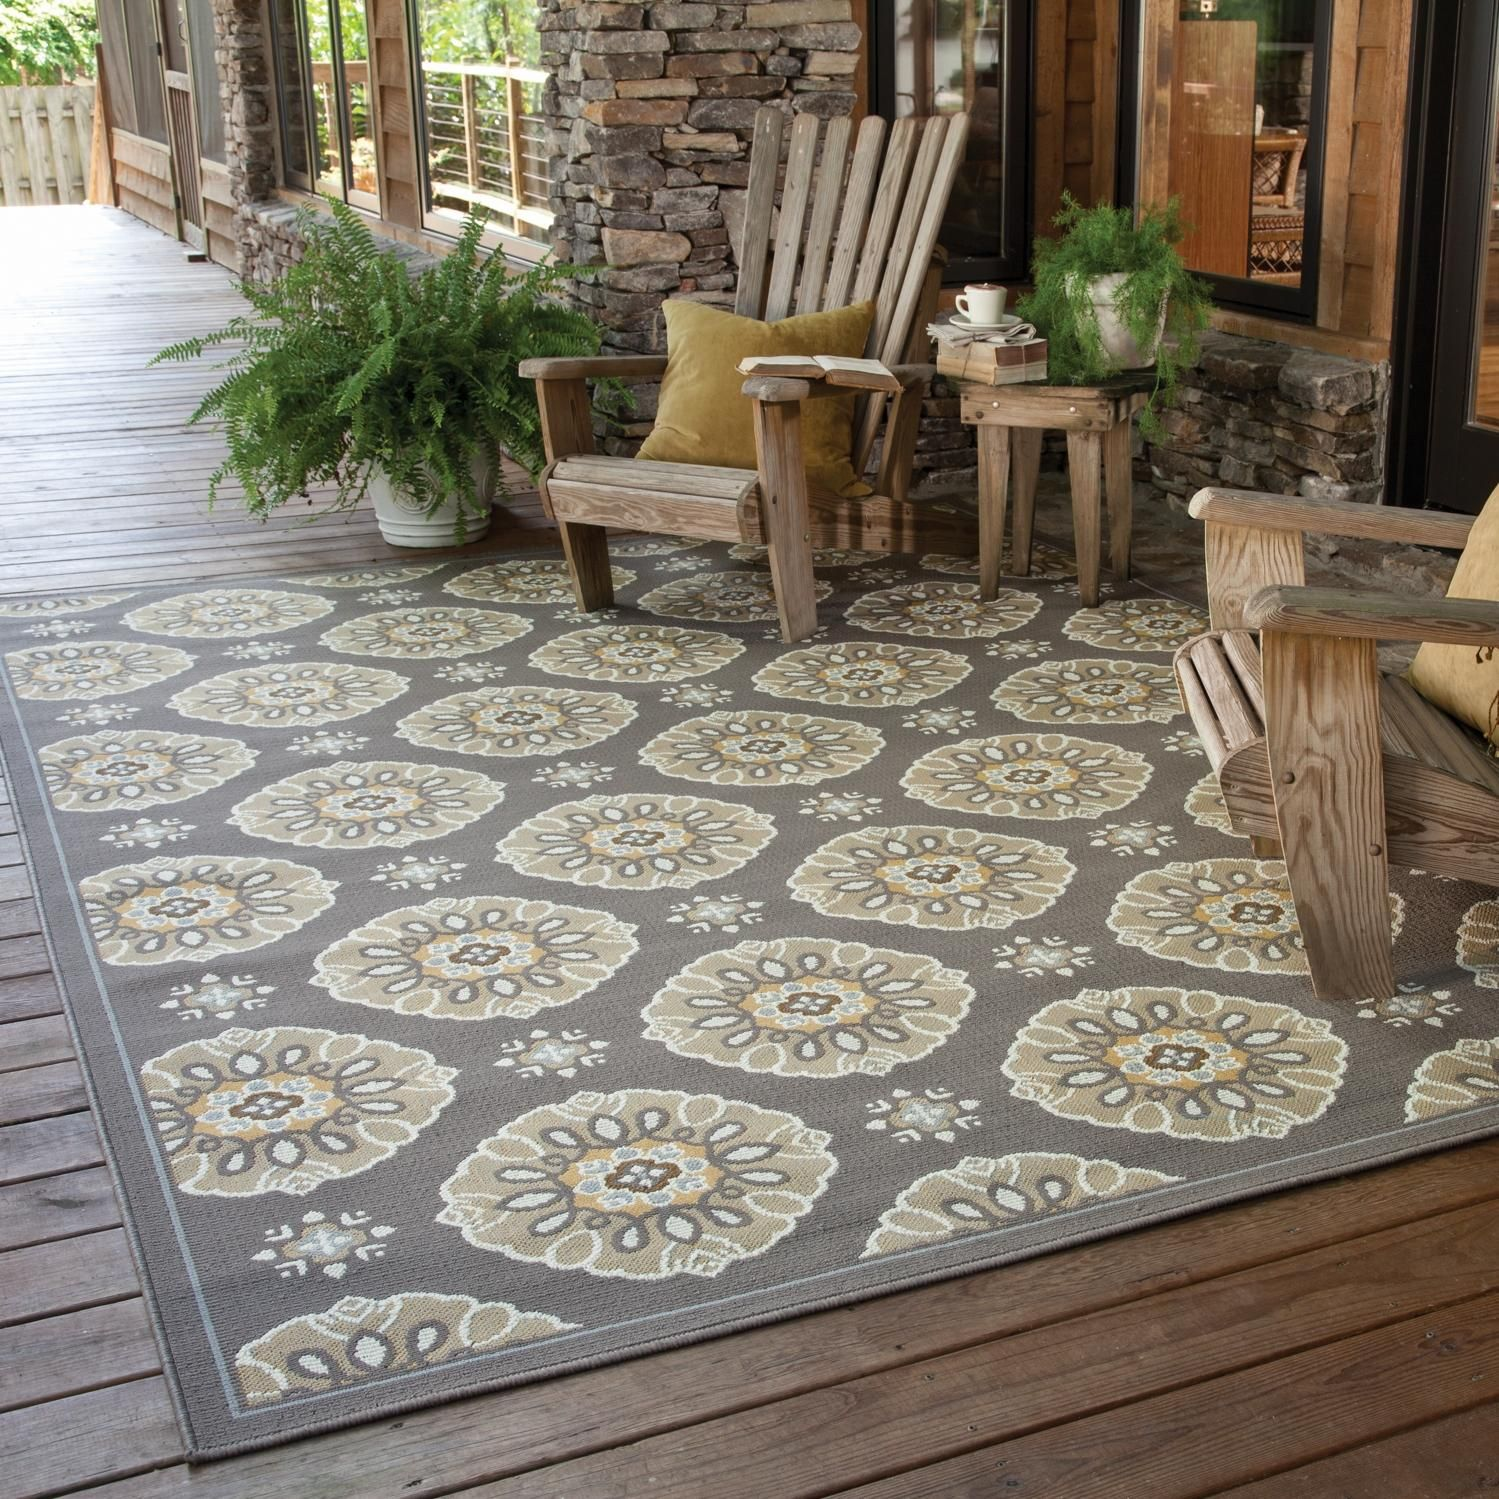 Oriental Weavers Bali 7 8 X 10 8 Indoor Outdoor Rug